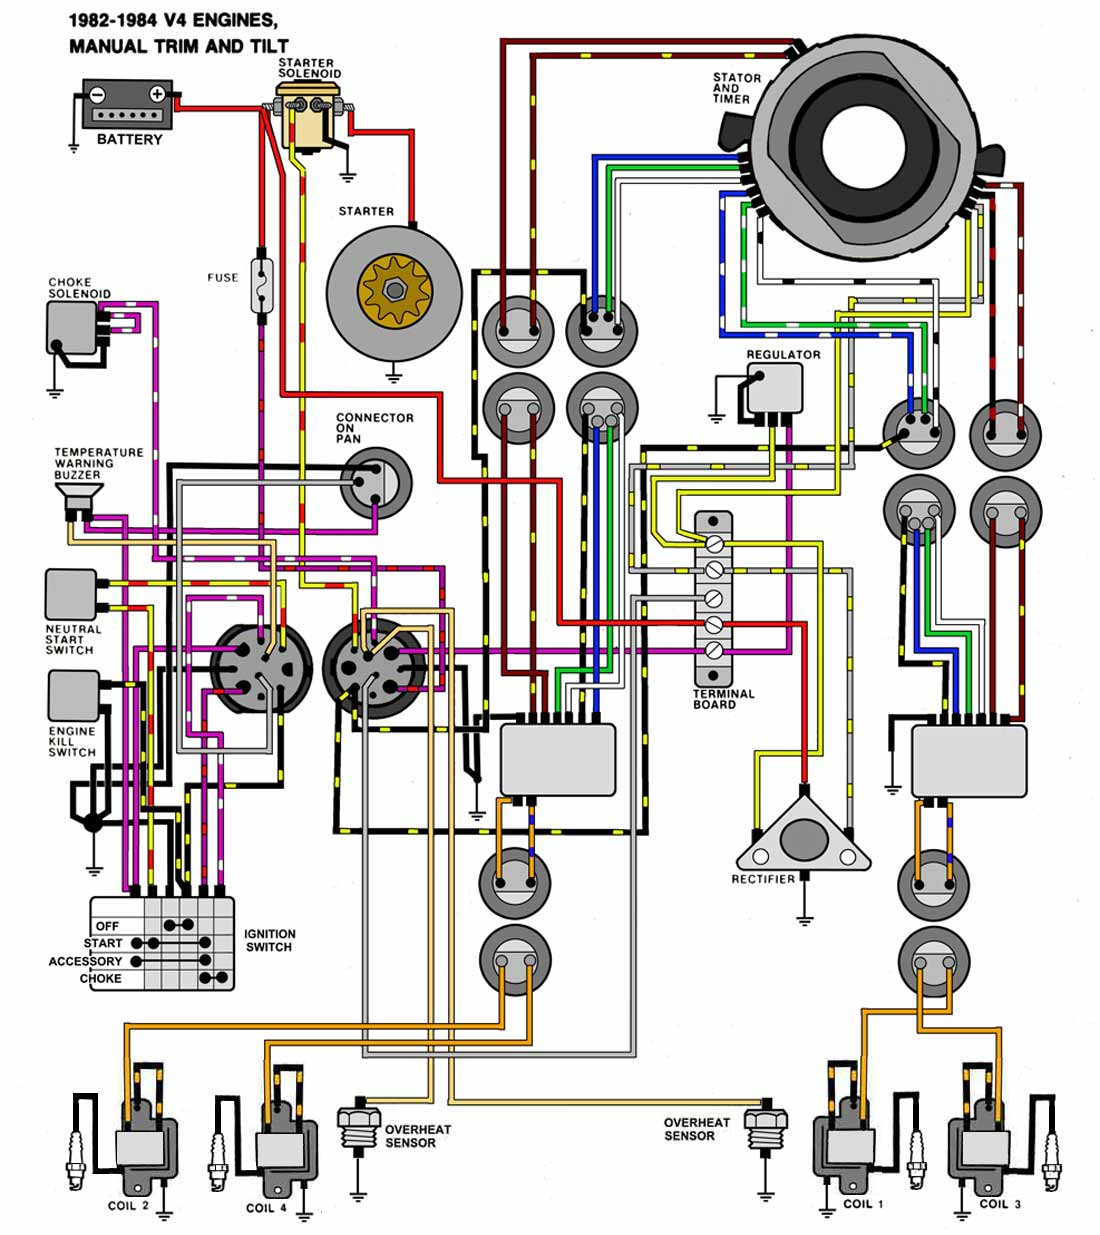 82_84_V4_NOTNT mastertech marine evinrude johnson outboard wiring diagrams  at crackthecode.co